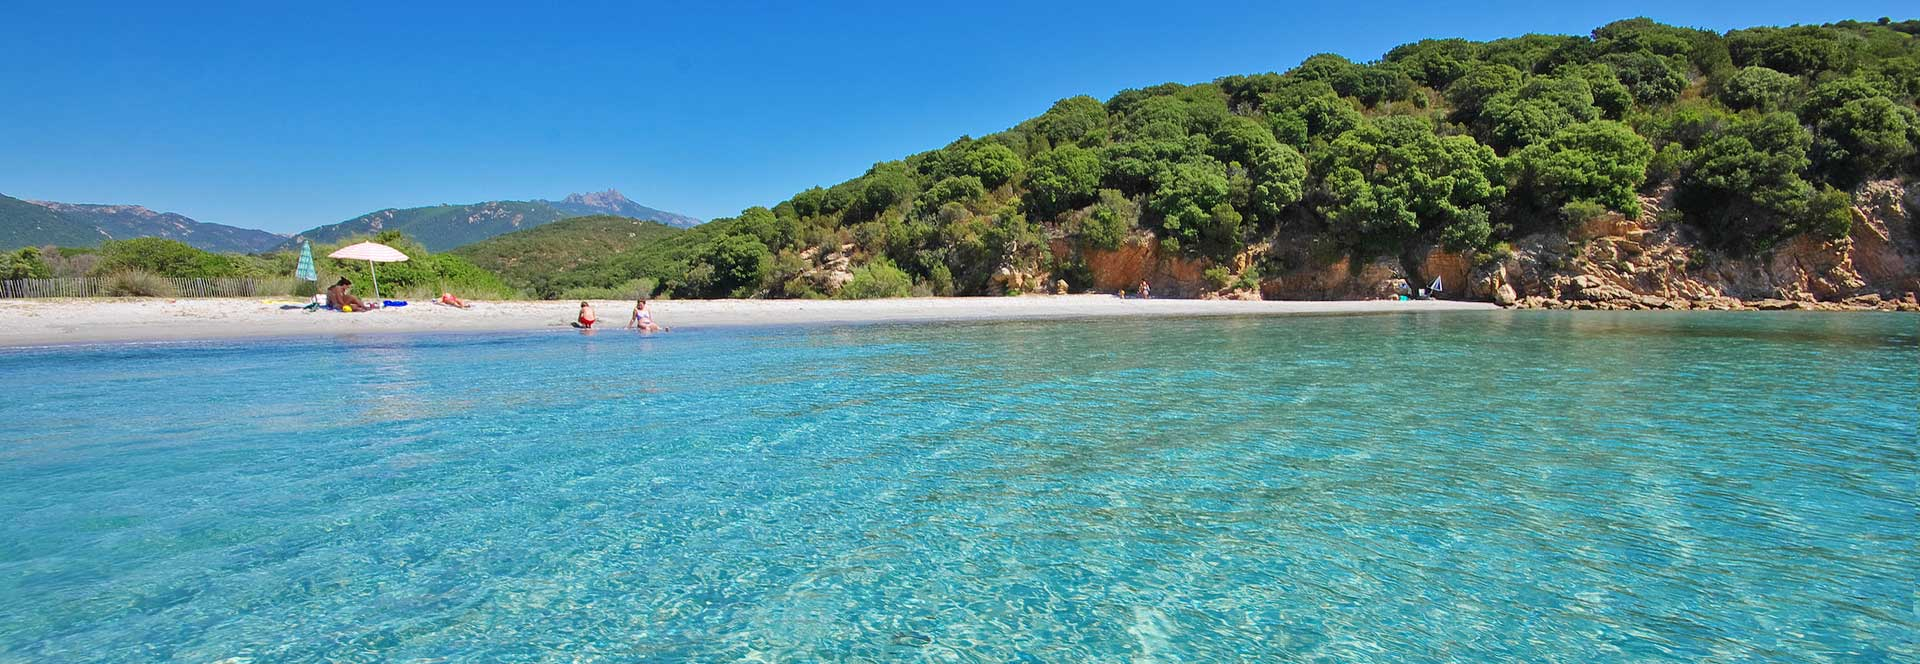 Corsica vacations. Tours & vacations in Corsica in 2020 & 2021